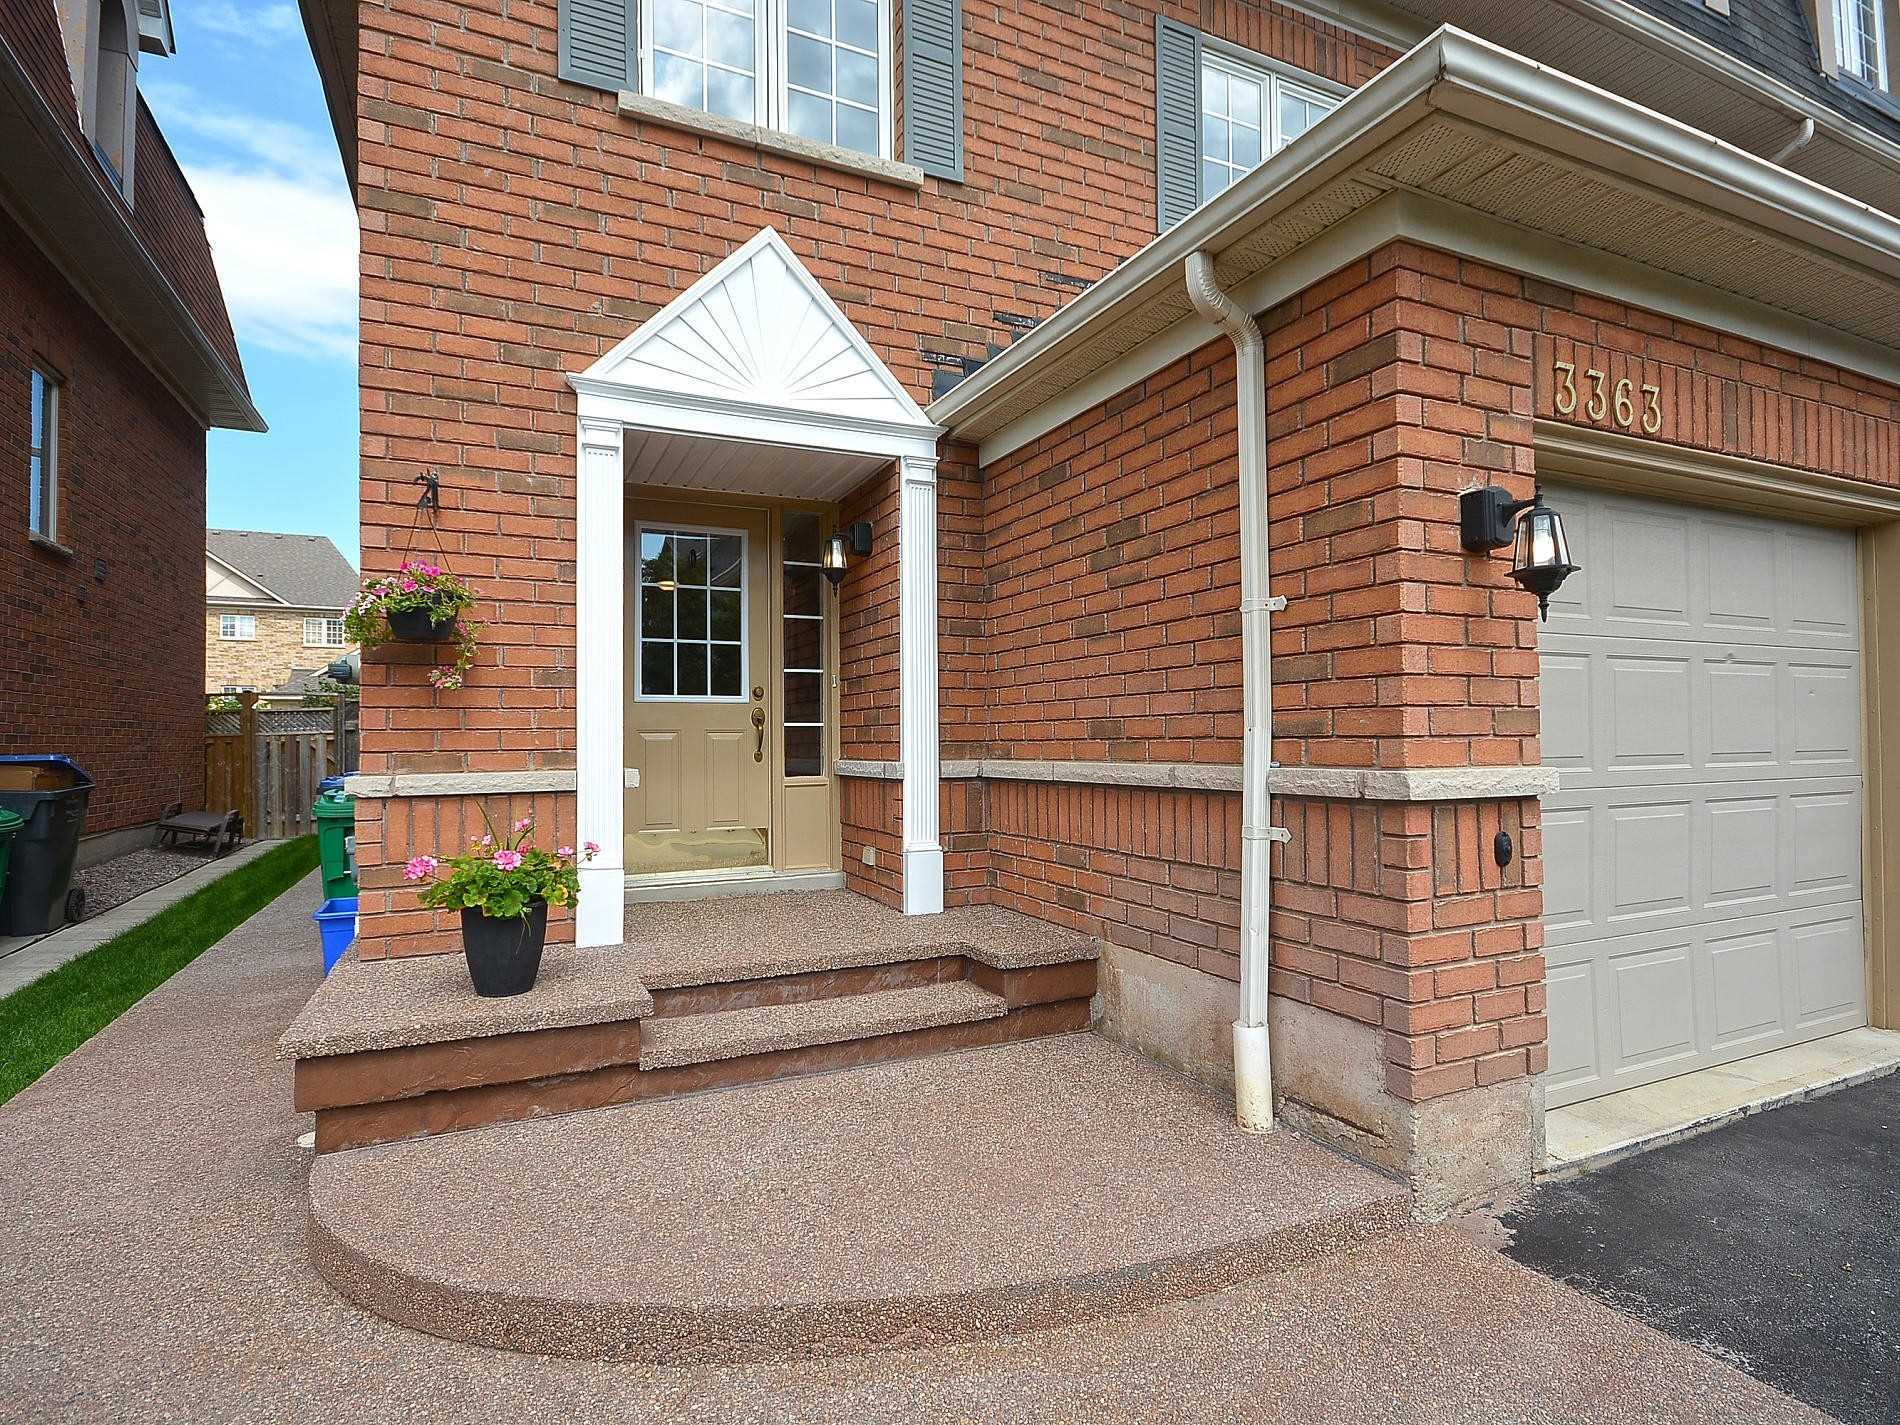 3363 Southwick St Churchill Meadows Mississauga Price